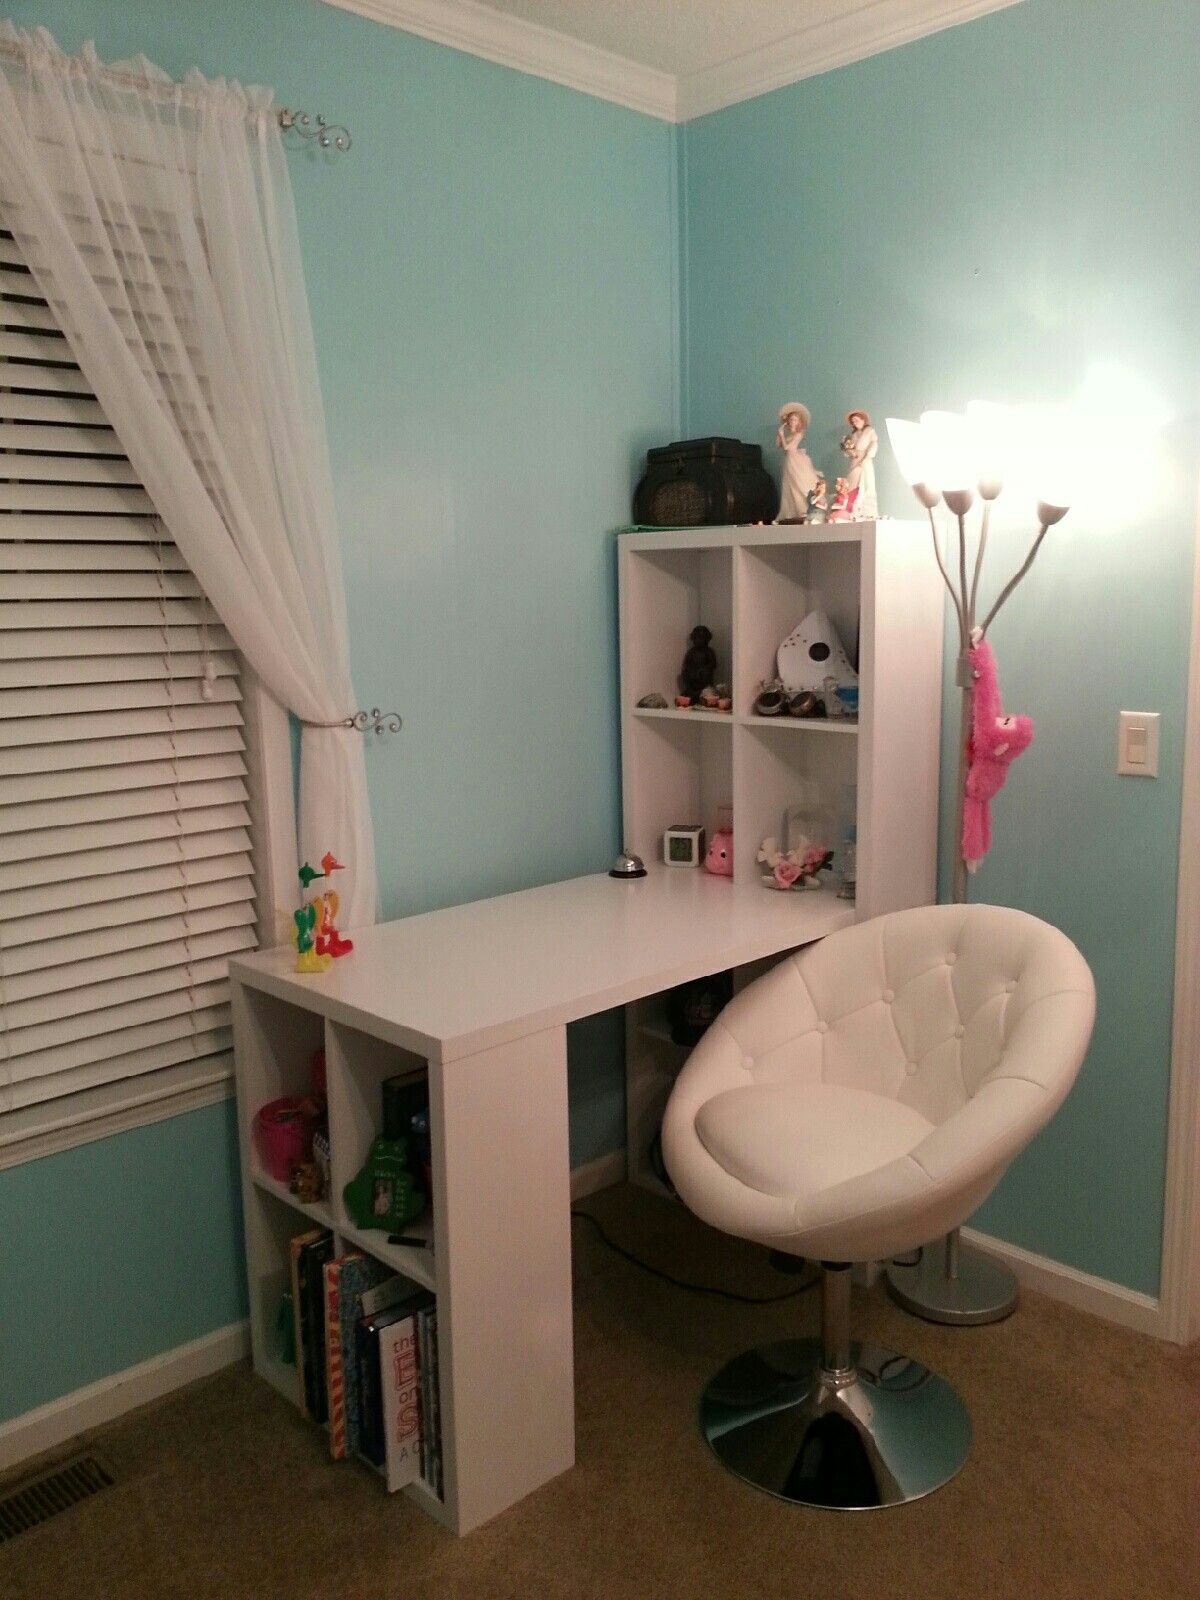 Desk and chair ordered from Amazon. Desk is a hobby desk